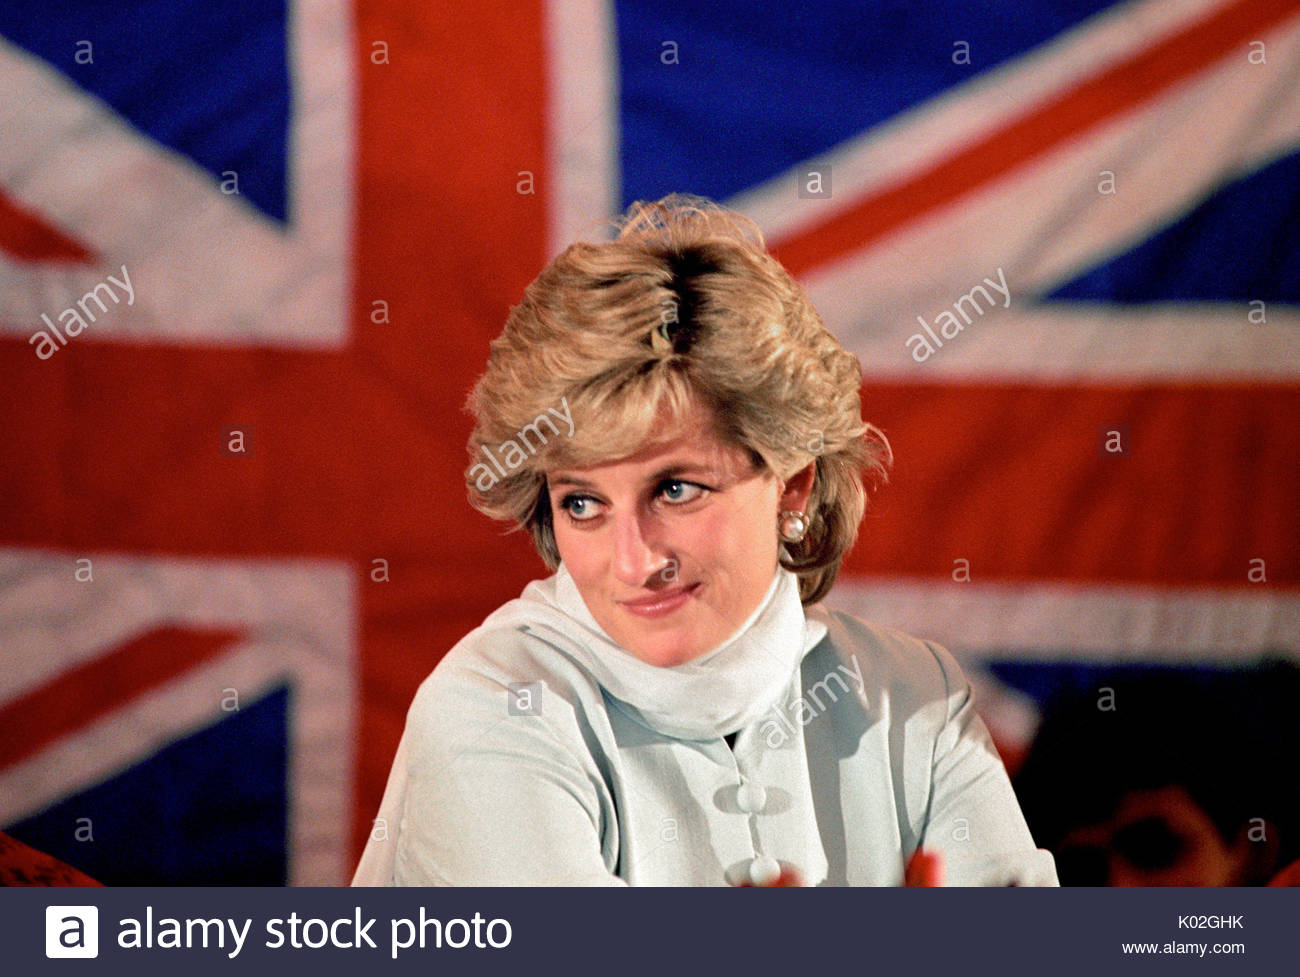 """File photo dated 22/02/96 of Diana, Princess of Wales whose warmth, compassion and empathy for those she met earned her the description the """"people's princess"""". - Stock Image"""